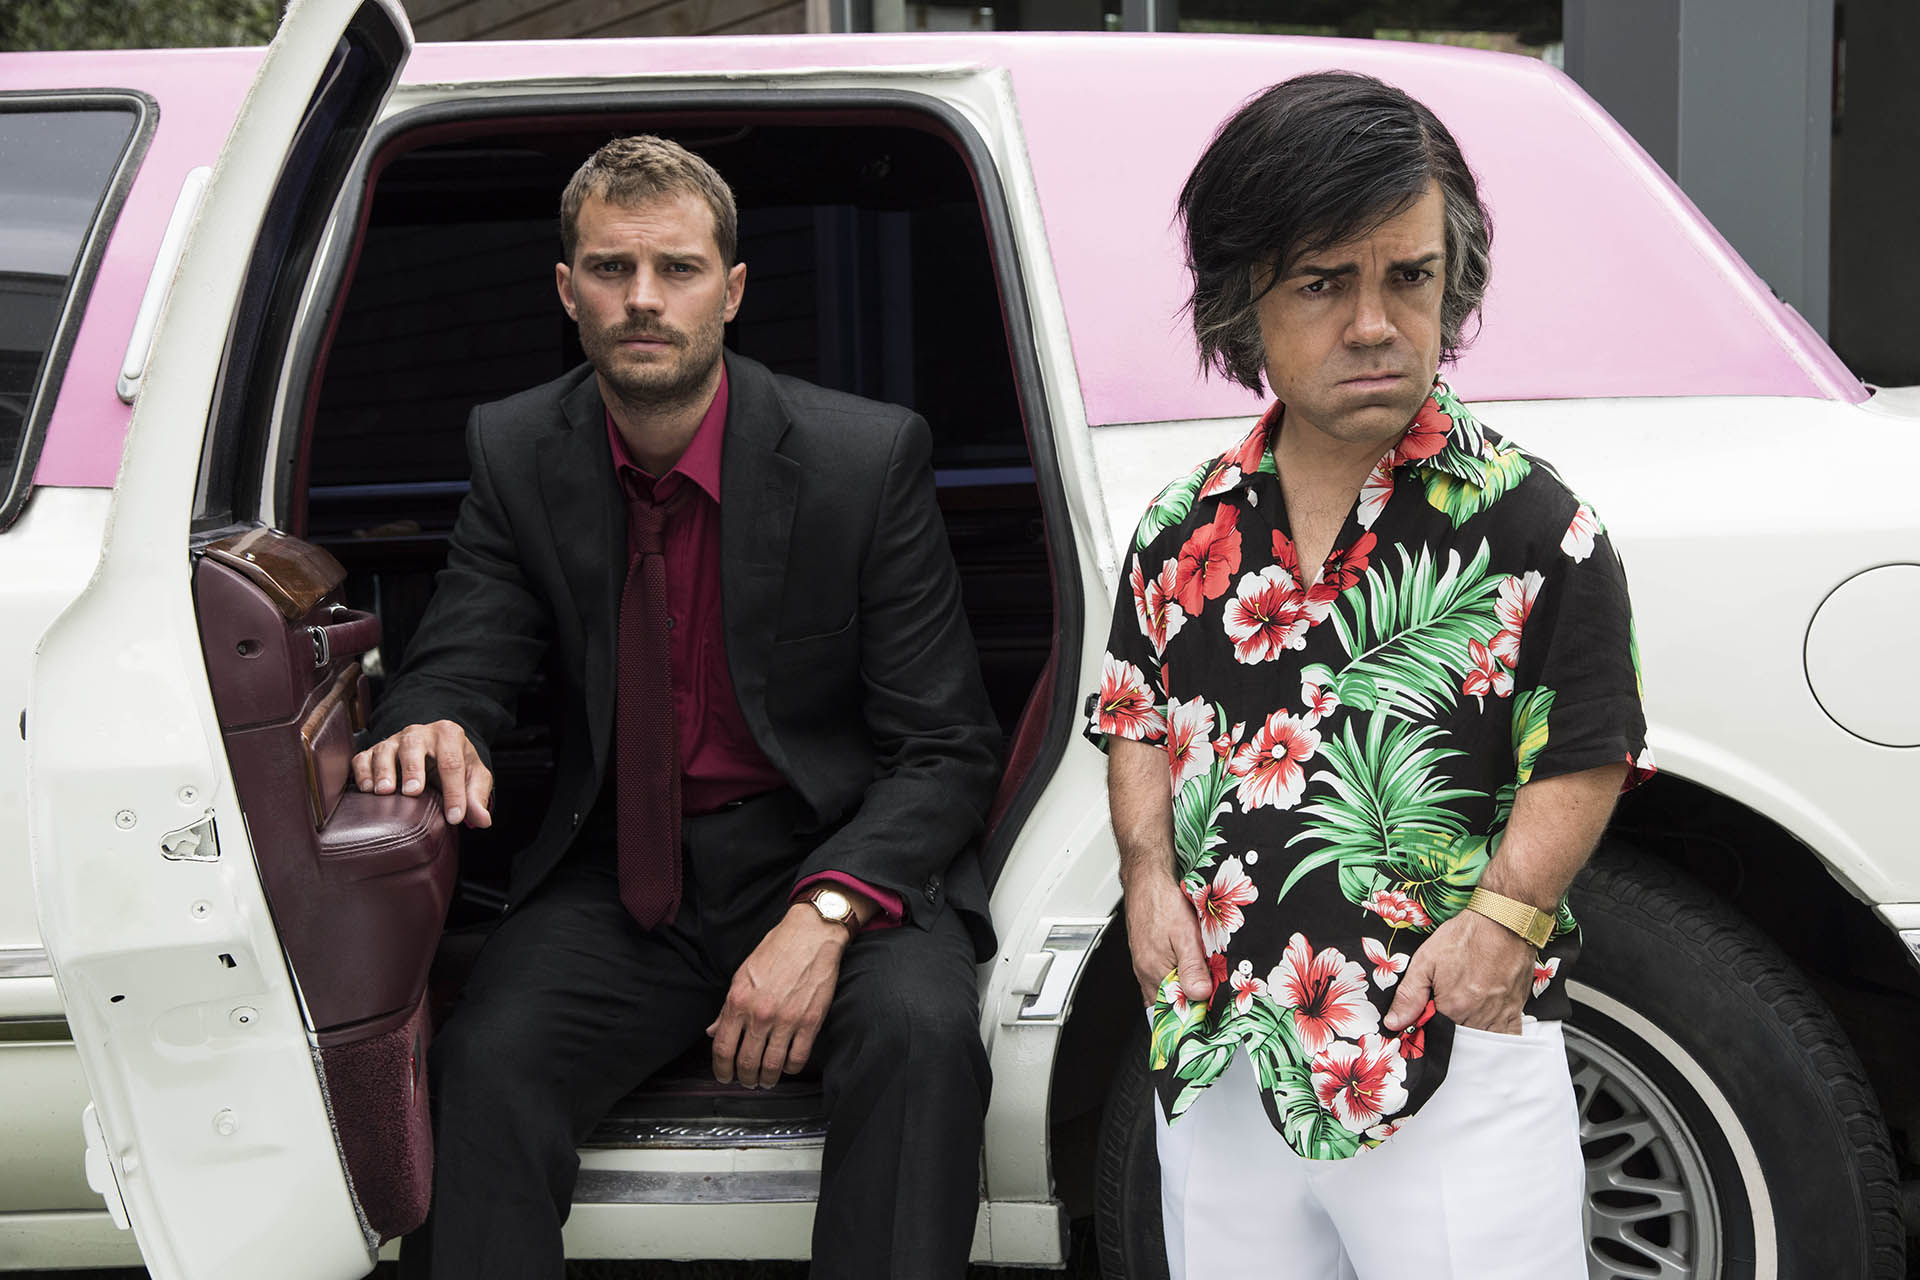 Peter Dinklage nel primo trailer di My Dinner with Hervè   Collater.al 1